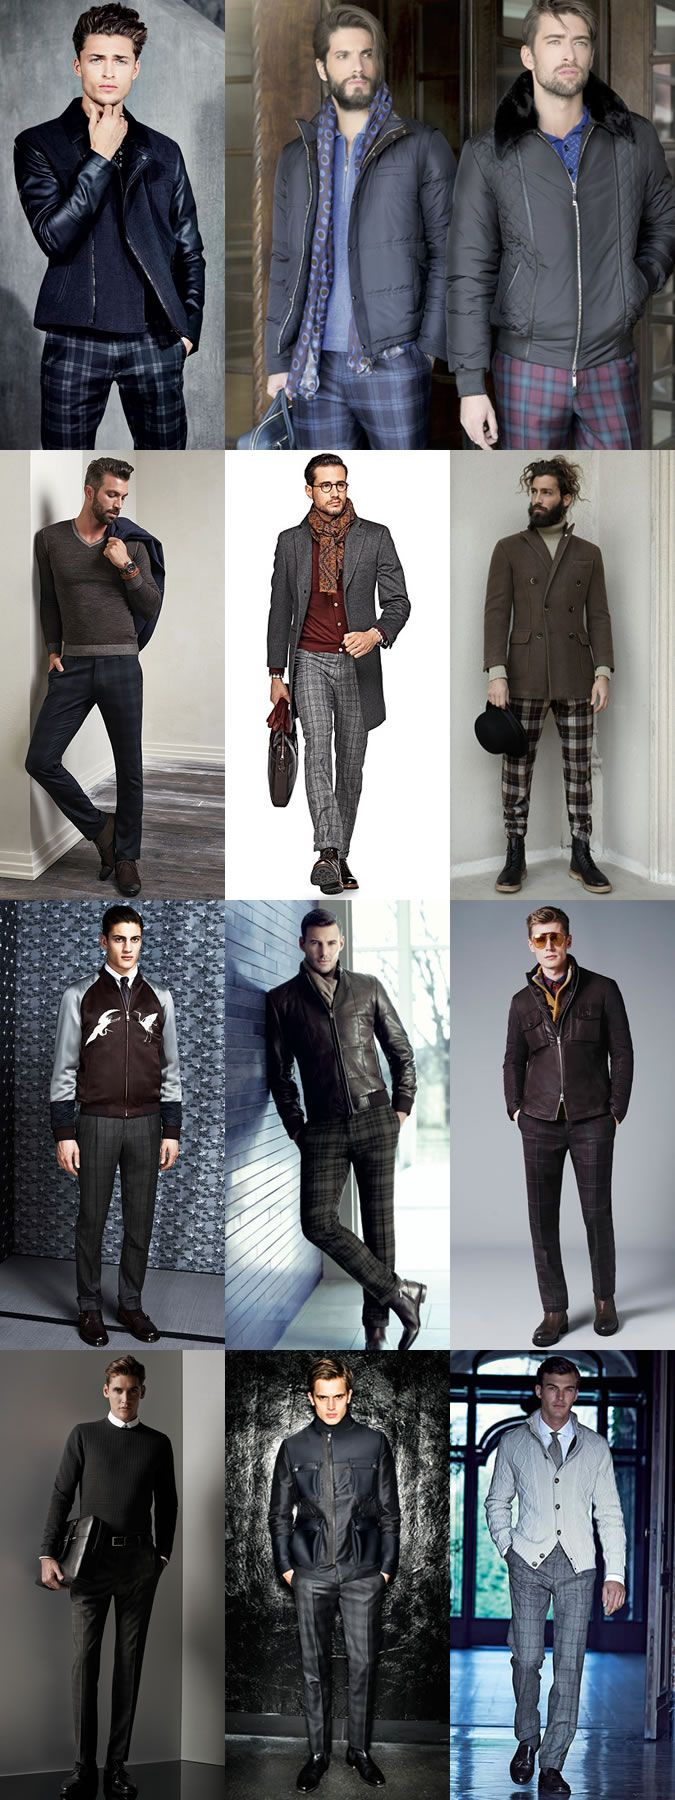 4137 Best Images About Articles On Pinterest Men Hats Blazers For Men And Urban Fashion